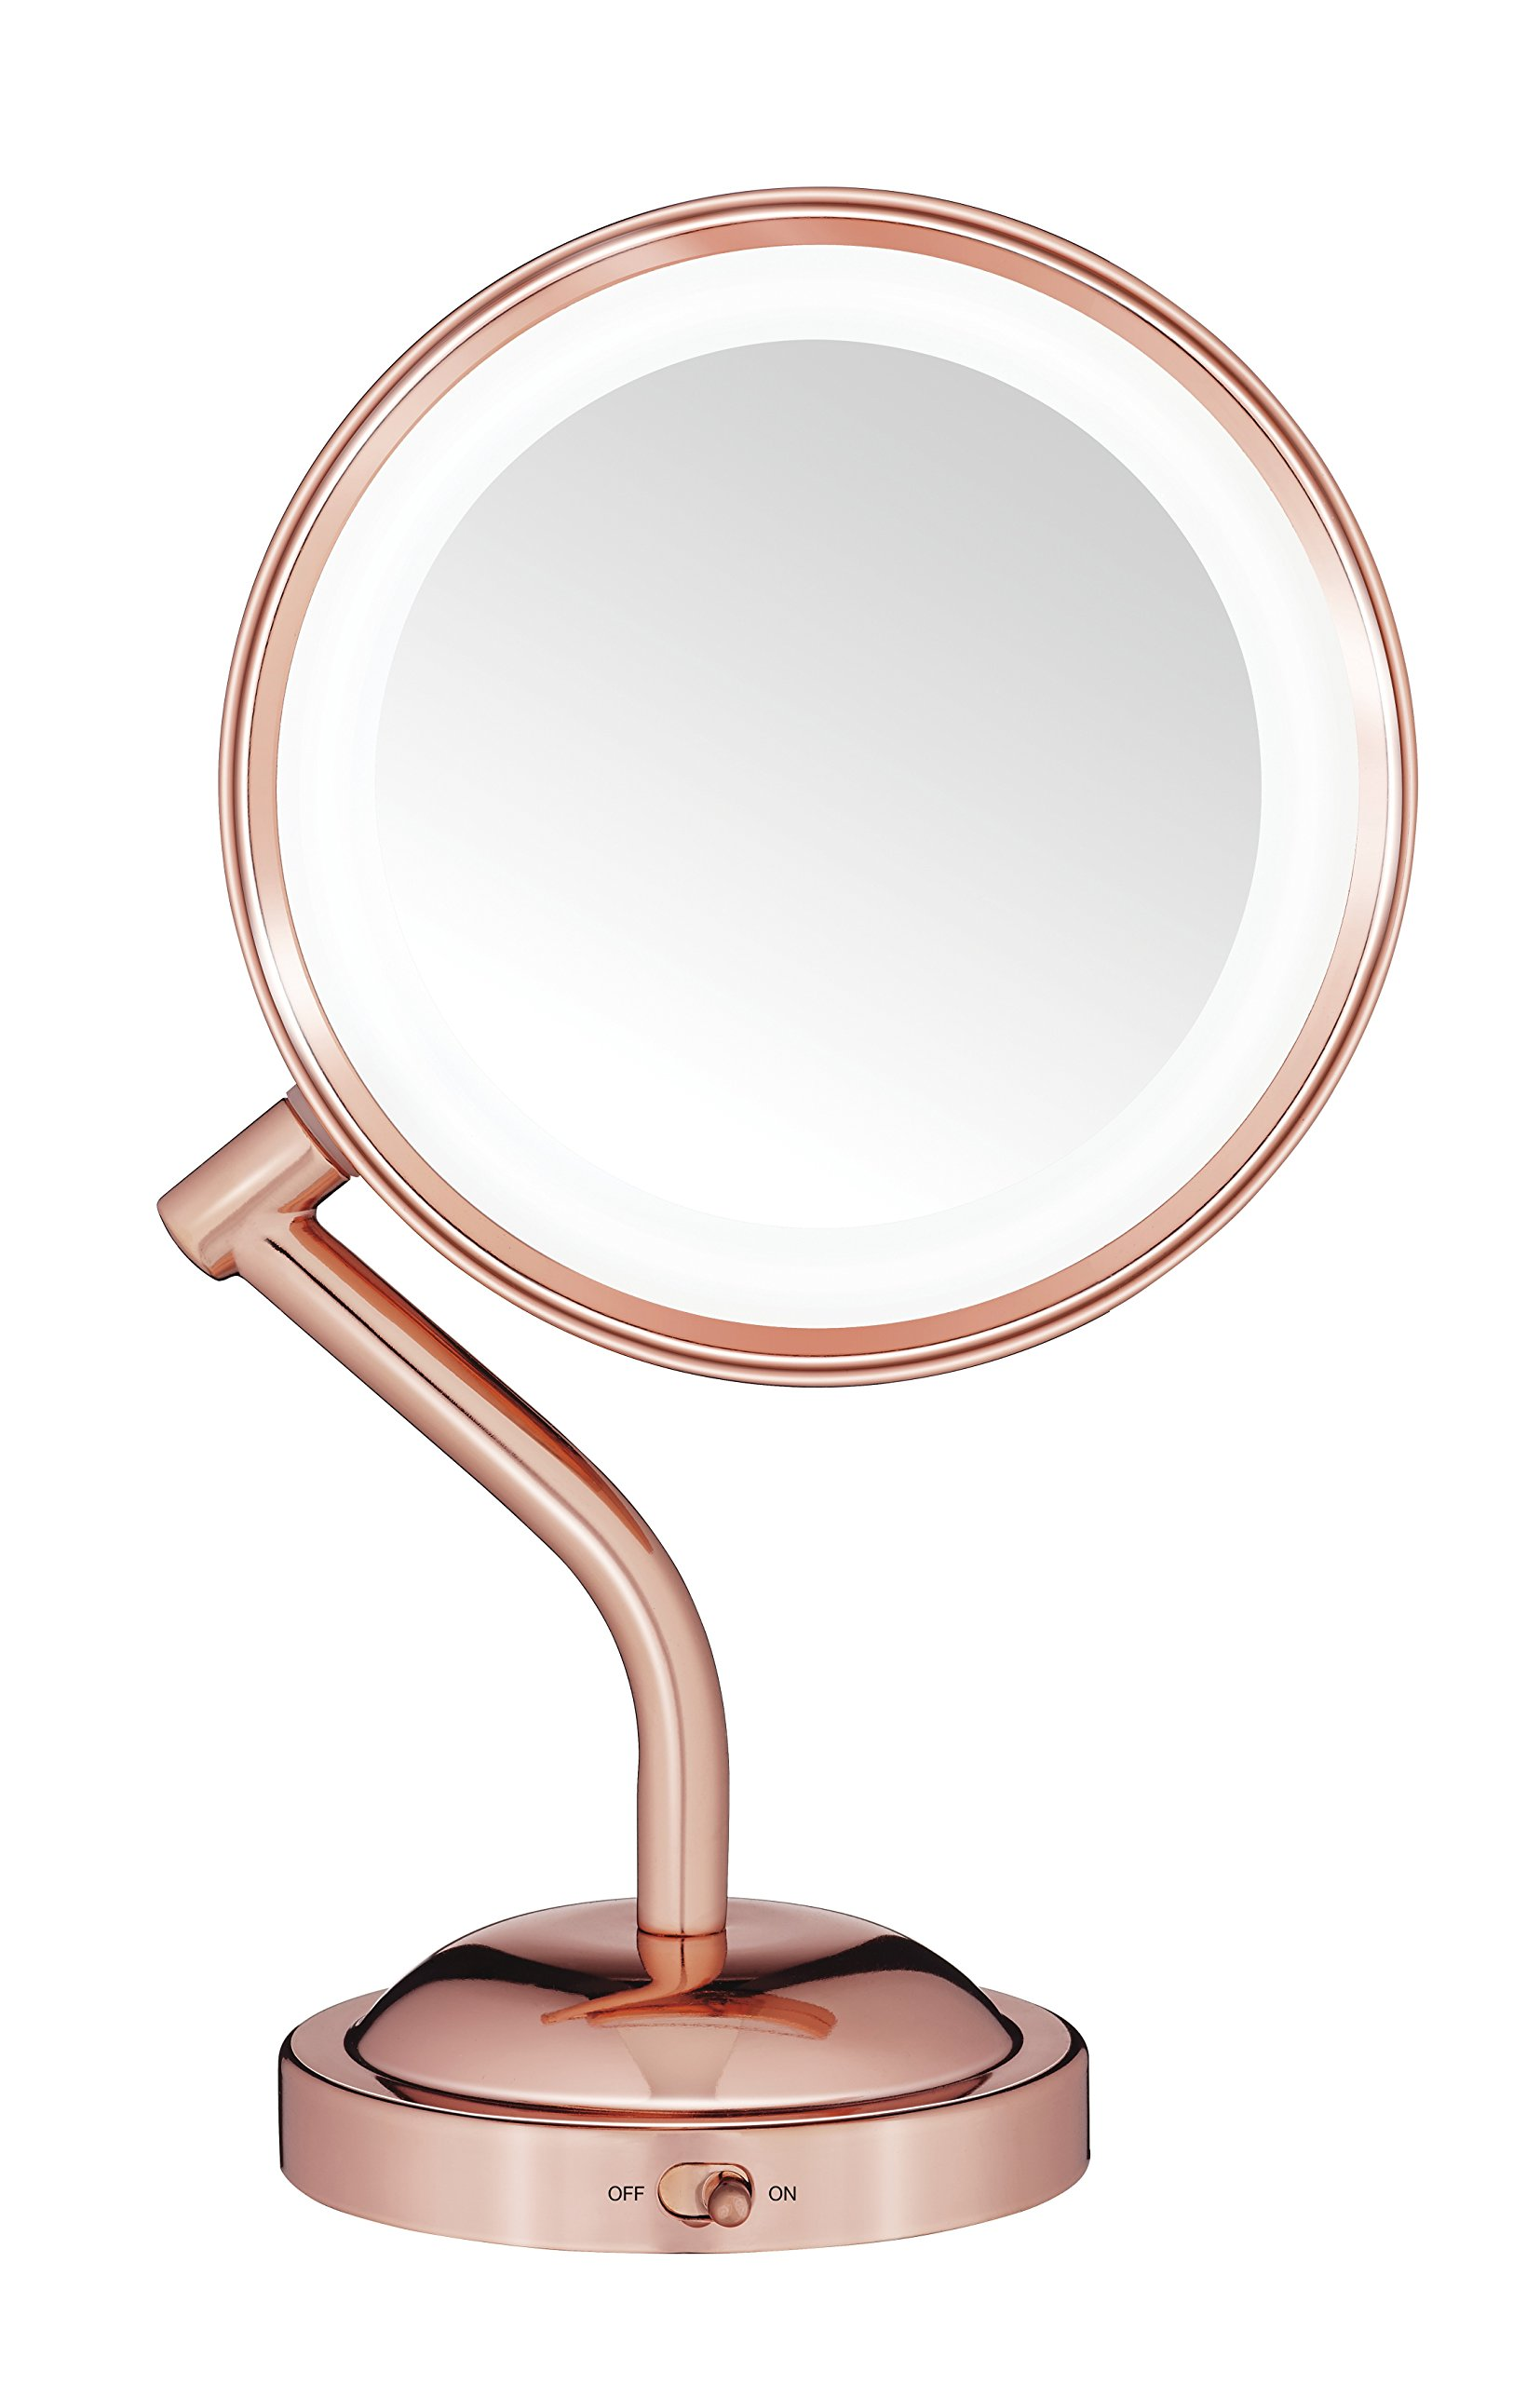 CDM product Conair Double-Sided Battery Operated Lighted Makeup Mirror - Lighted Vanity Makeup Mirror with LED Lights; 1x / 5x Magnification; Rose Gold Finish big image